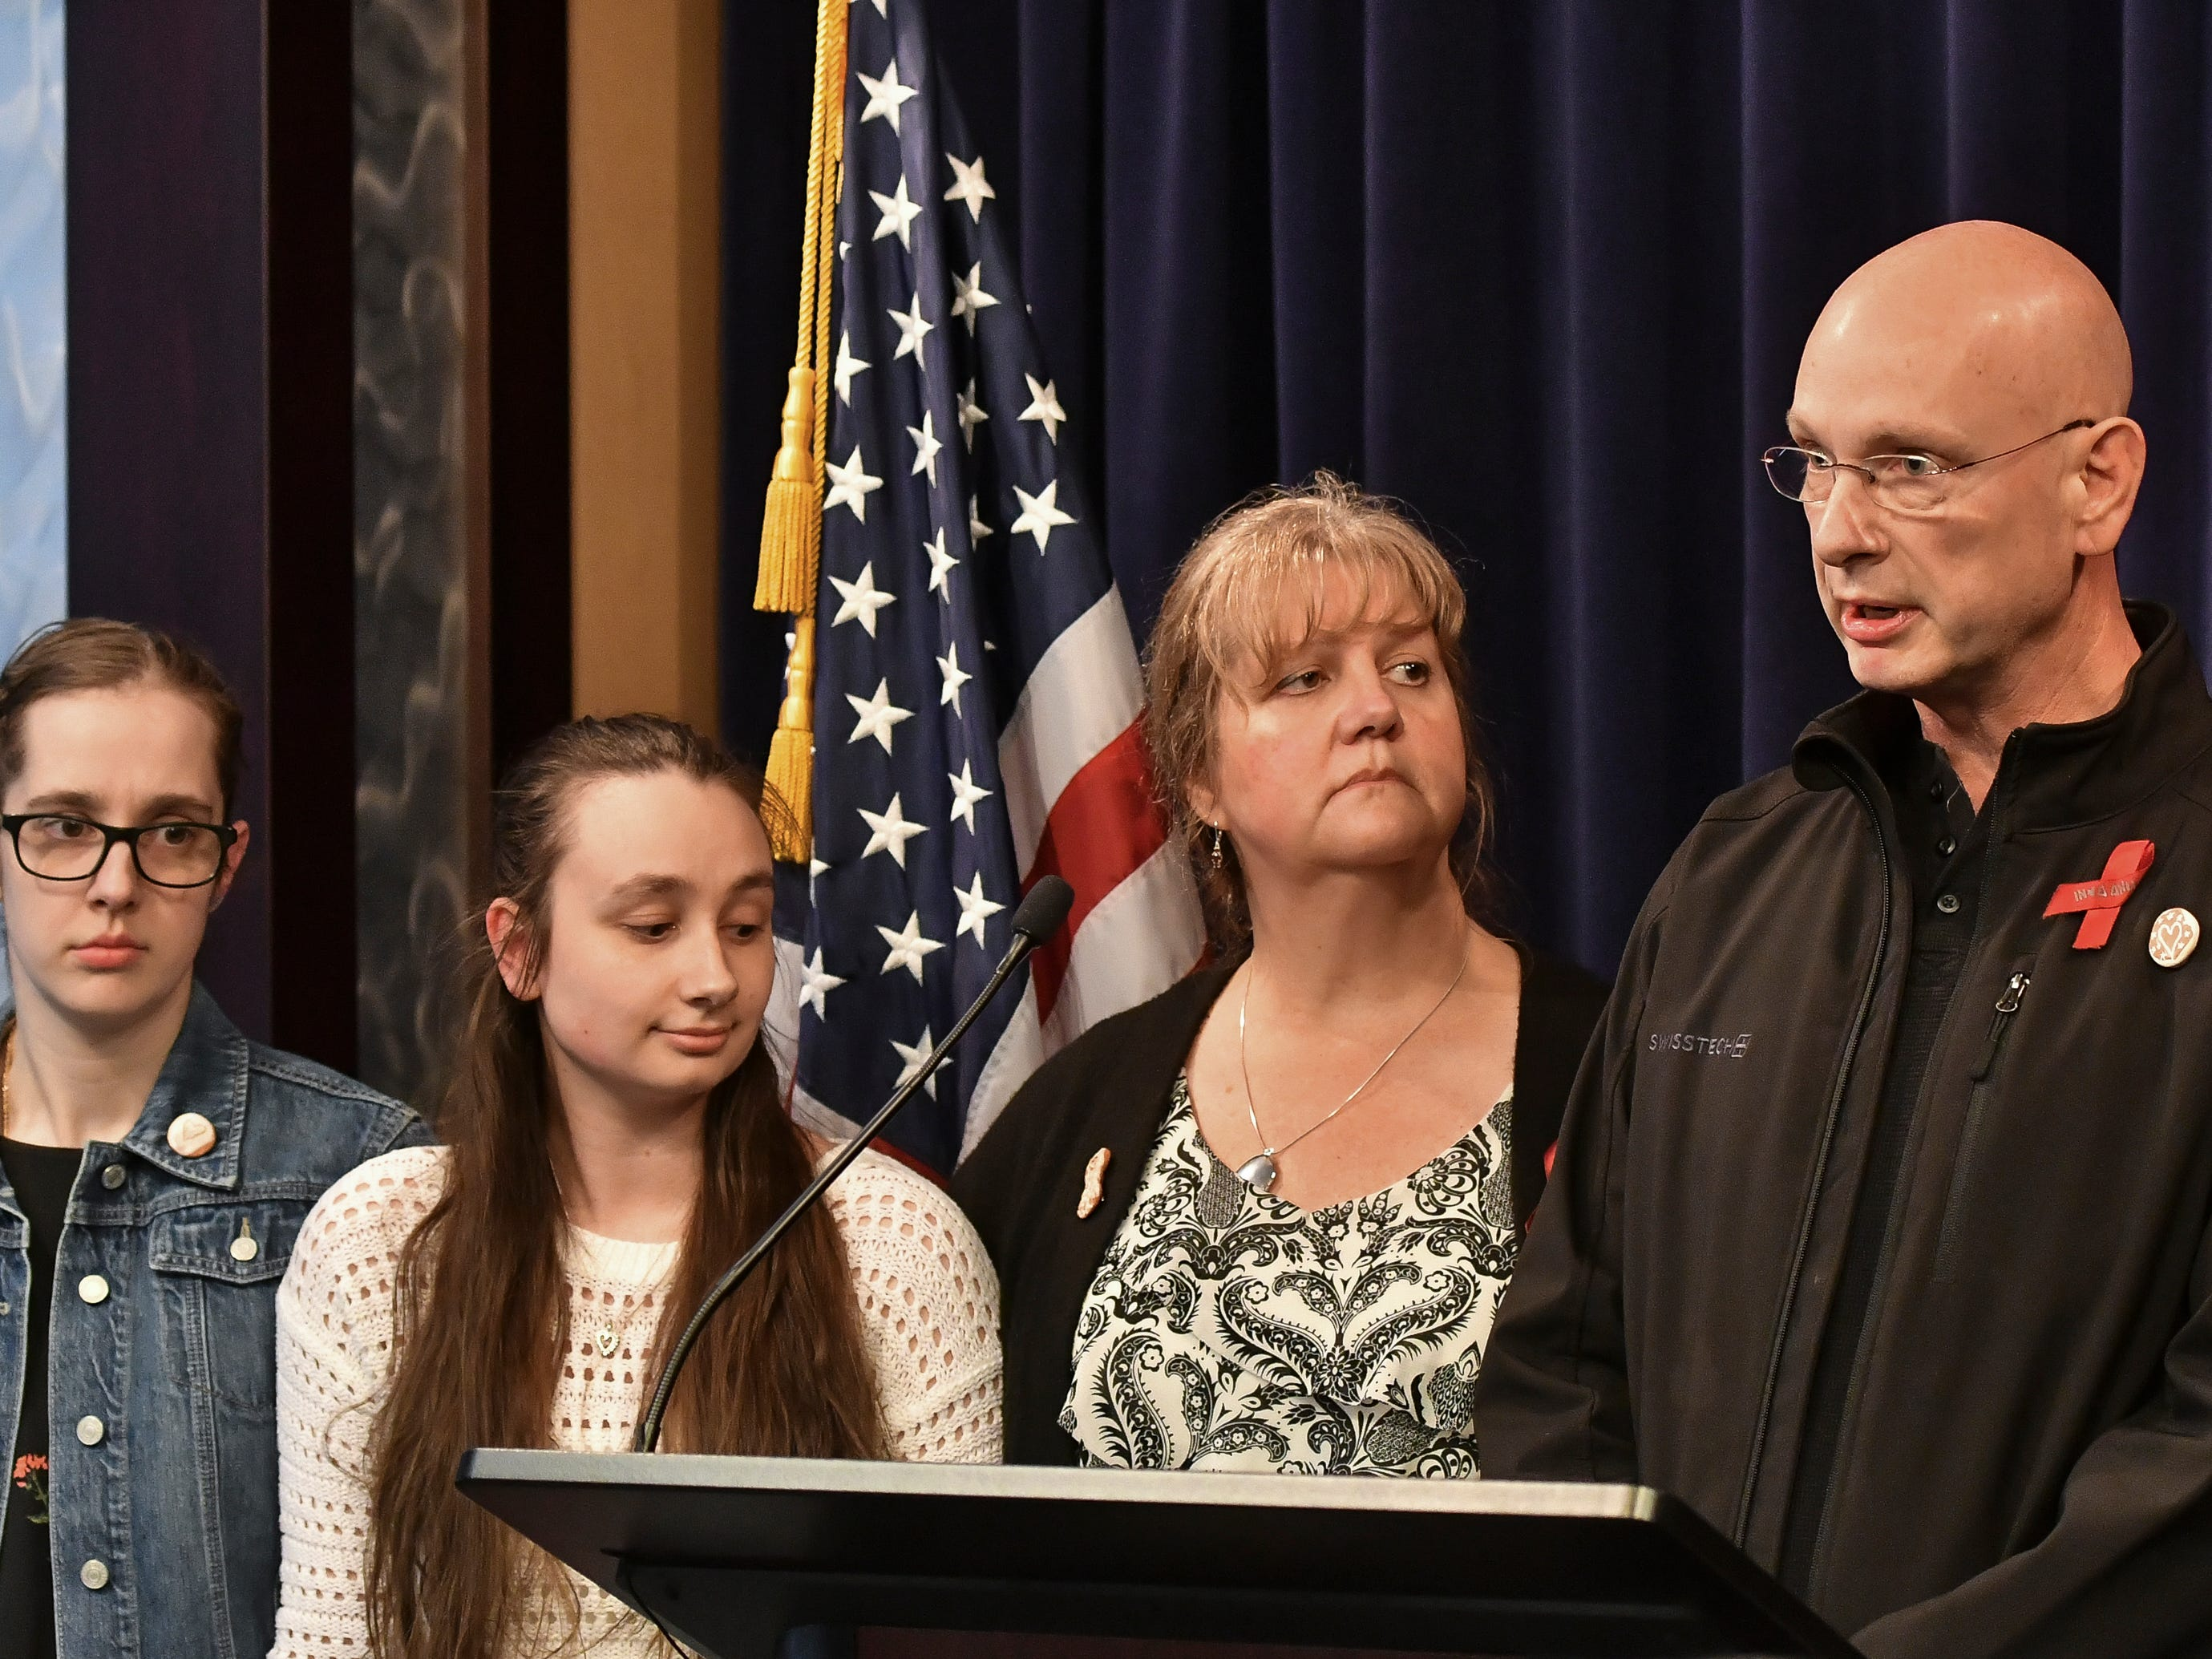 The family of Danielle Stislicki (from left Holly, Jillian, Ann and Richard) thank law enforcement and the Attorney General's office for their work, Tuesday, March 5, 2019, in downtown Lansing.  Attorney General Dana Nessel filed first degree pre-meditated murder against Floyd Galloway, Jr., for the murder of Danielle Stislicki.  The 28-year-old disappeared from a parking lot in December 2016 and has never been found.